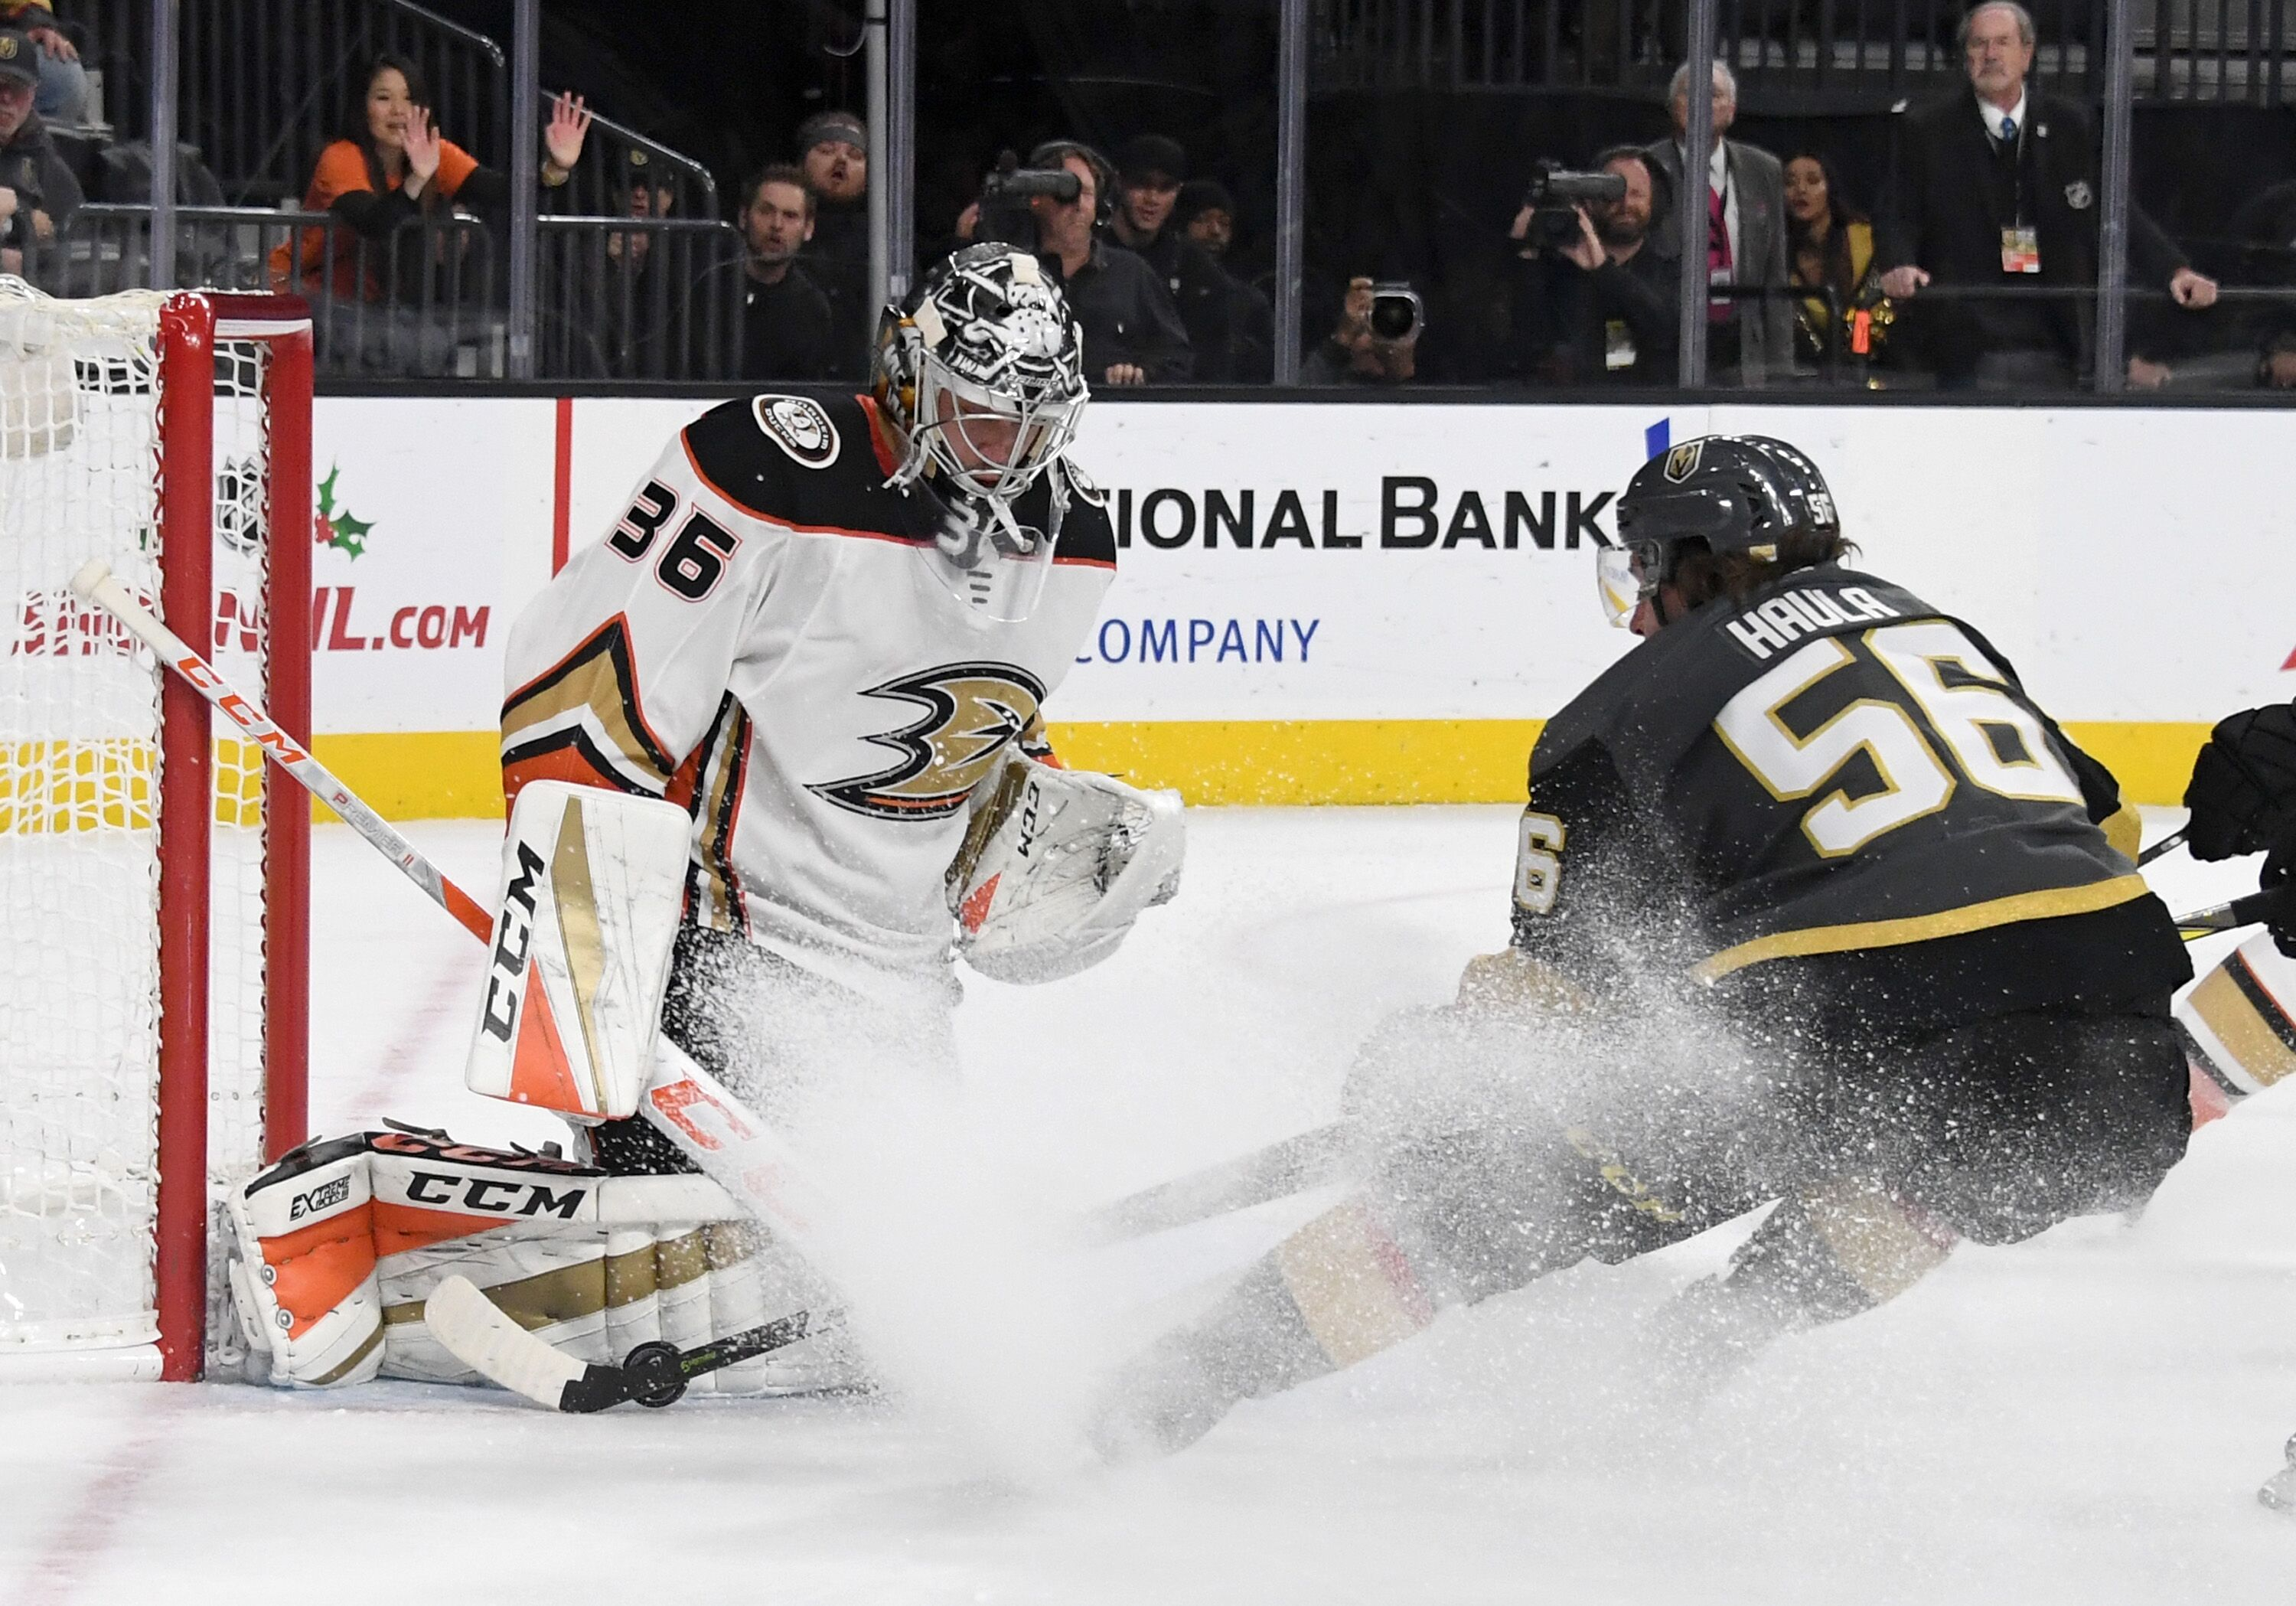 886758162-anaheim-ducks-v-vegas-golden-knights.jpg